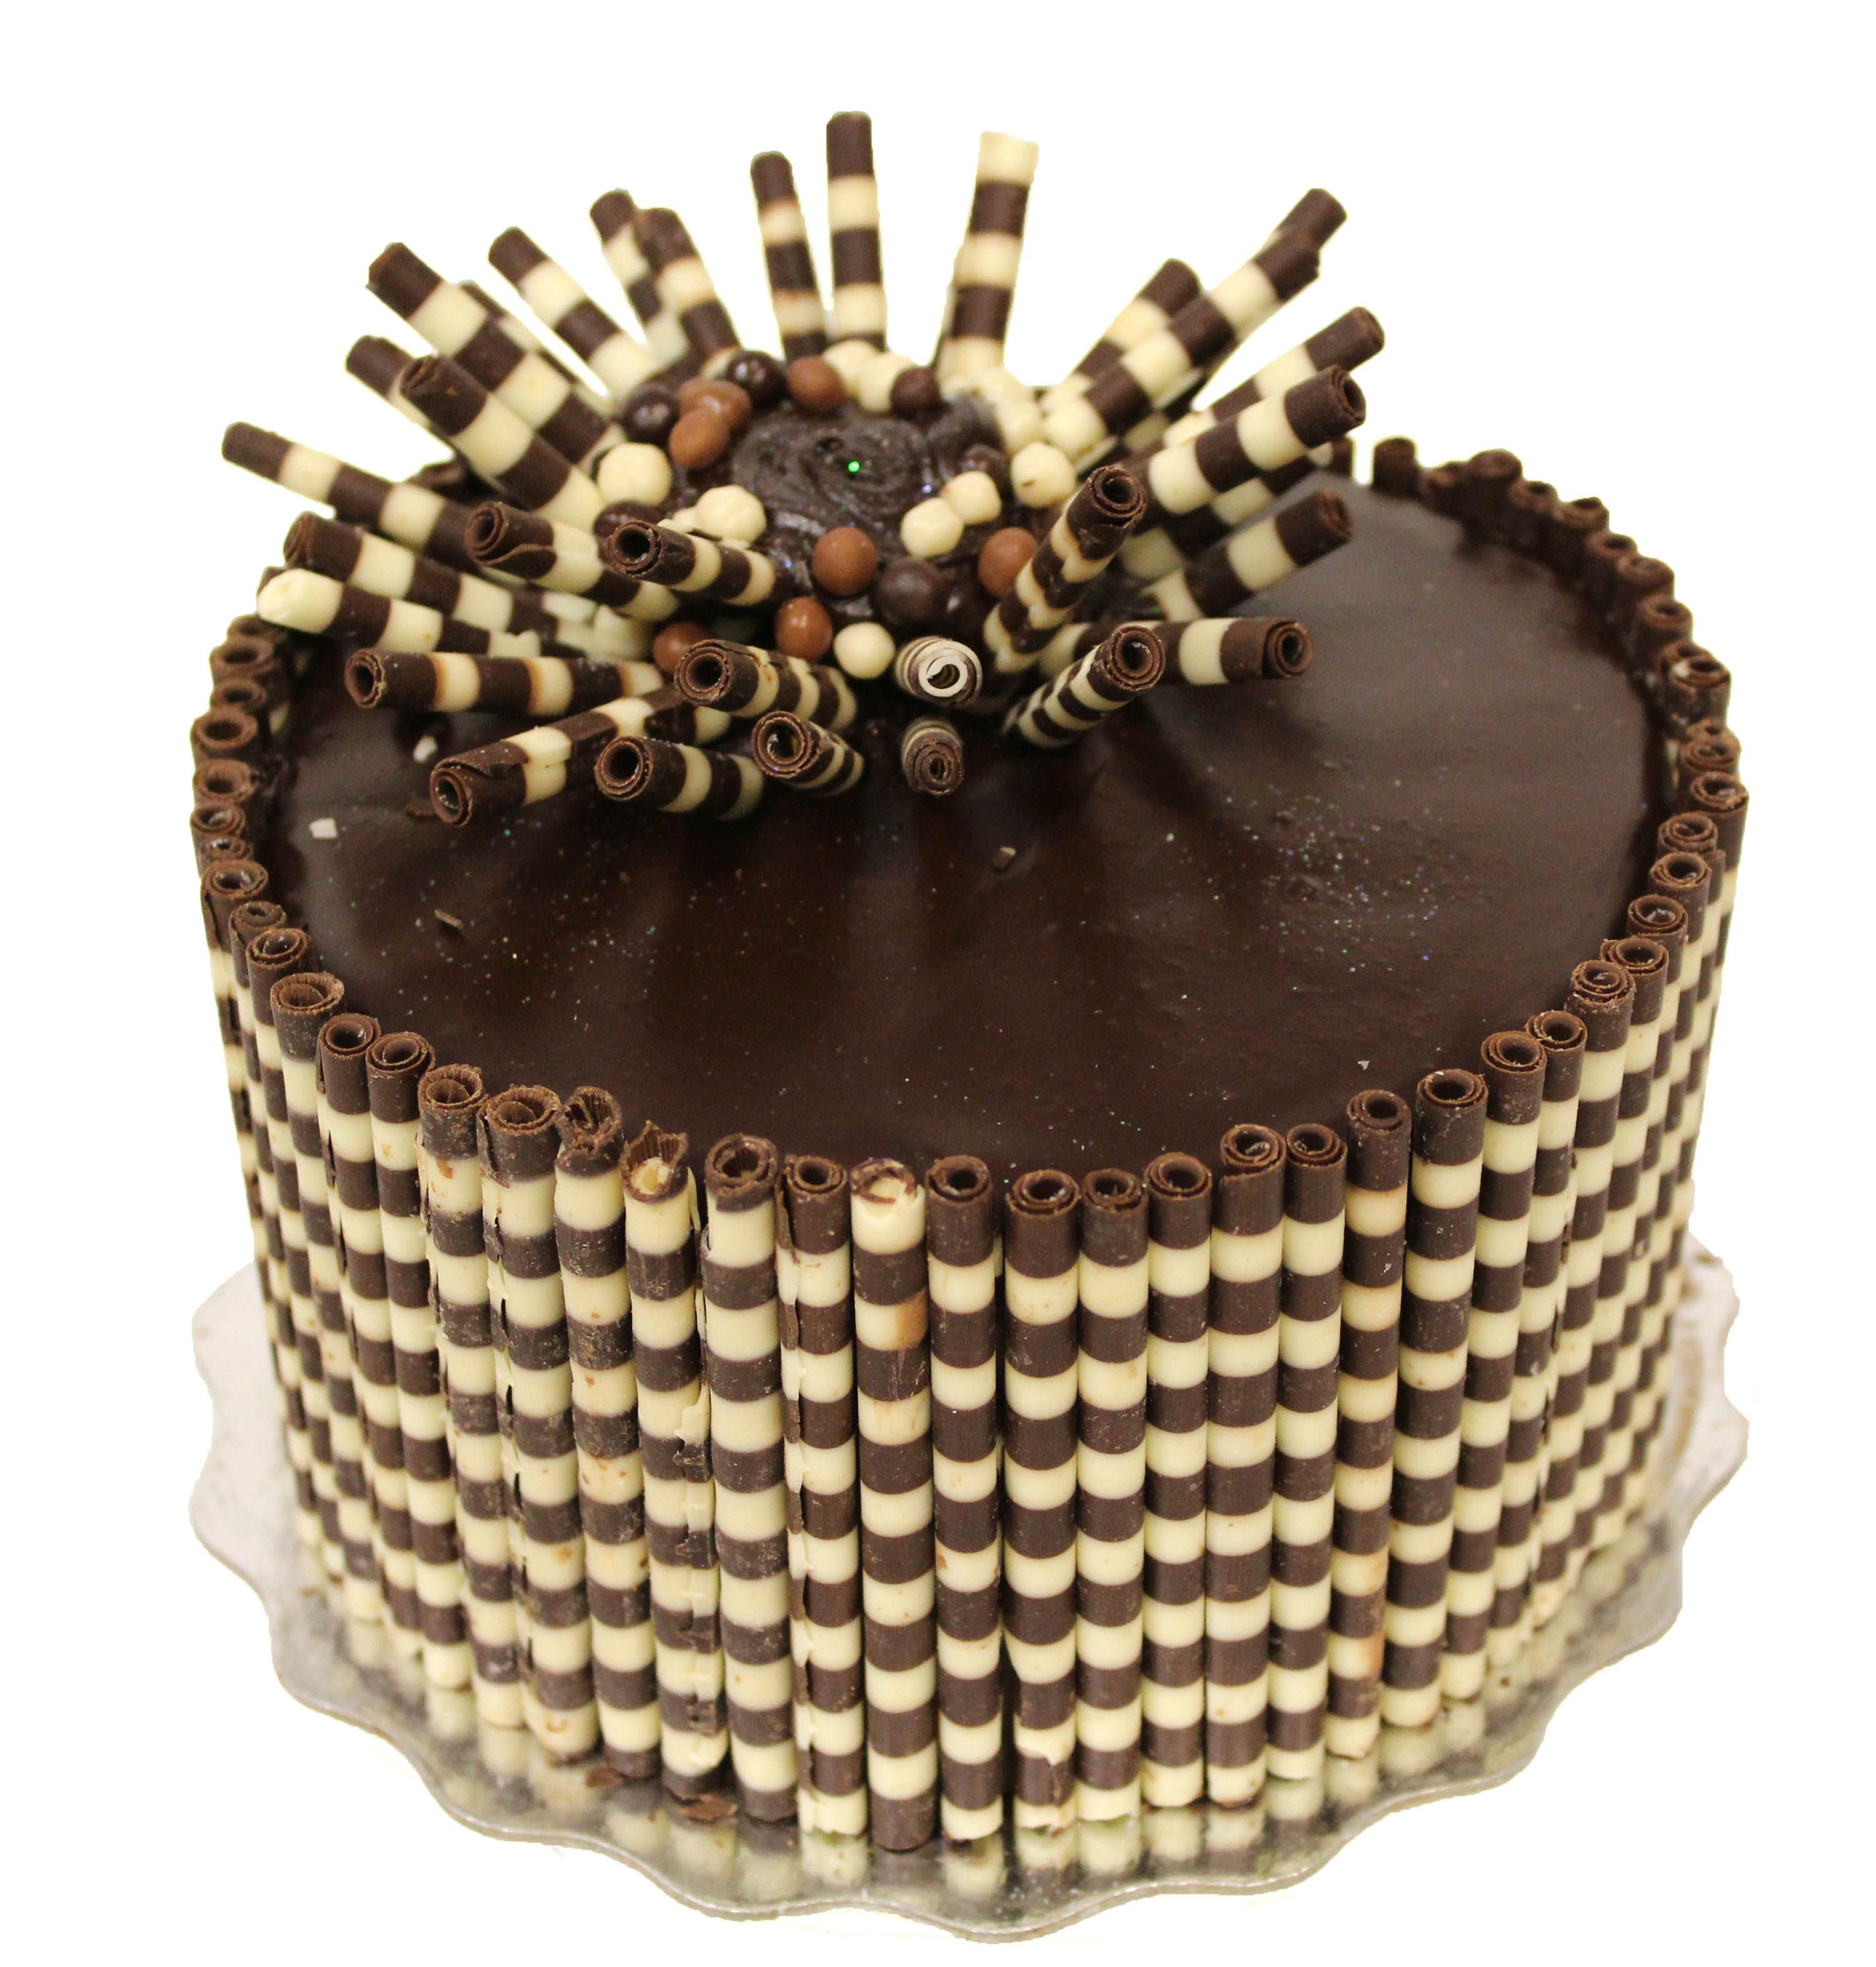 This Unique Chocolate Cake Was Decorated With Dobla Chocolate